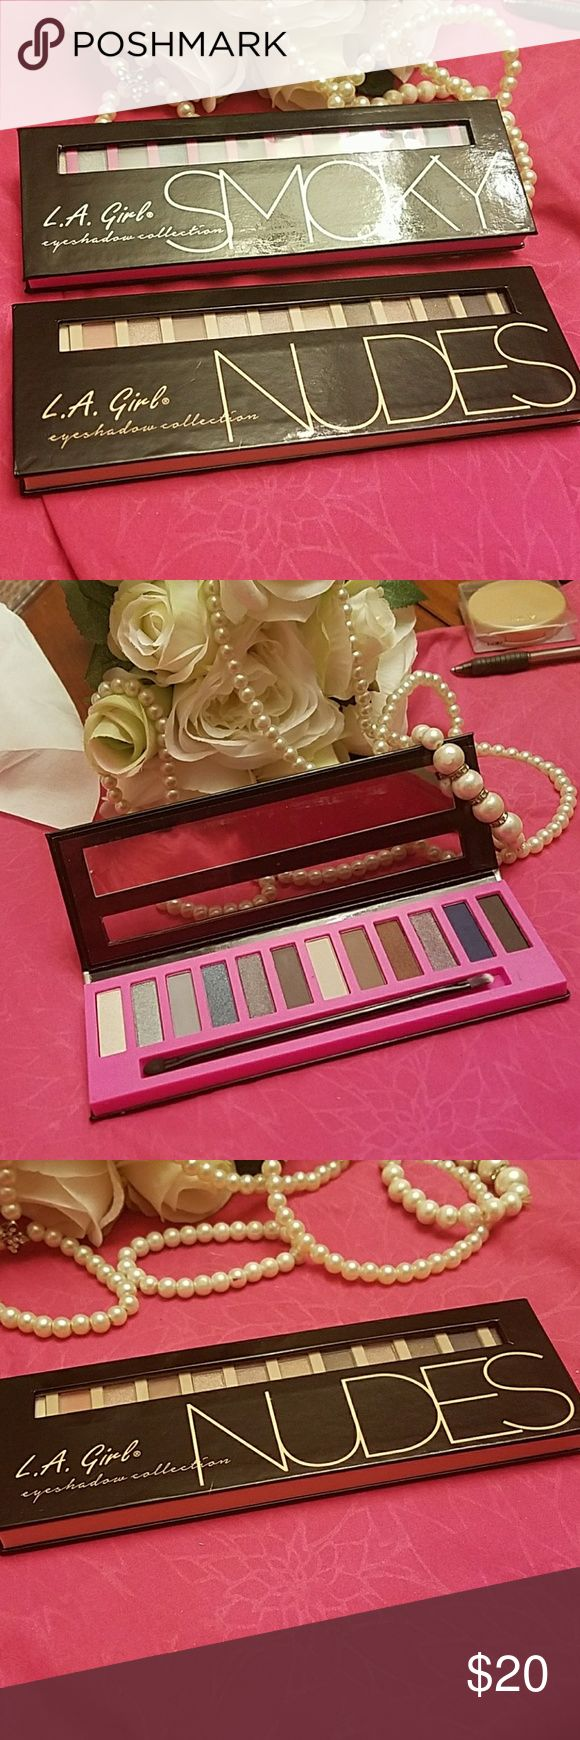 LA Girl Bundle Eyeshadow palettes Includes Smoky Pallet and Nudes Pallet. Price for both. Never touched. Sephora Makeup Eyeshadow